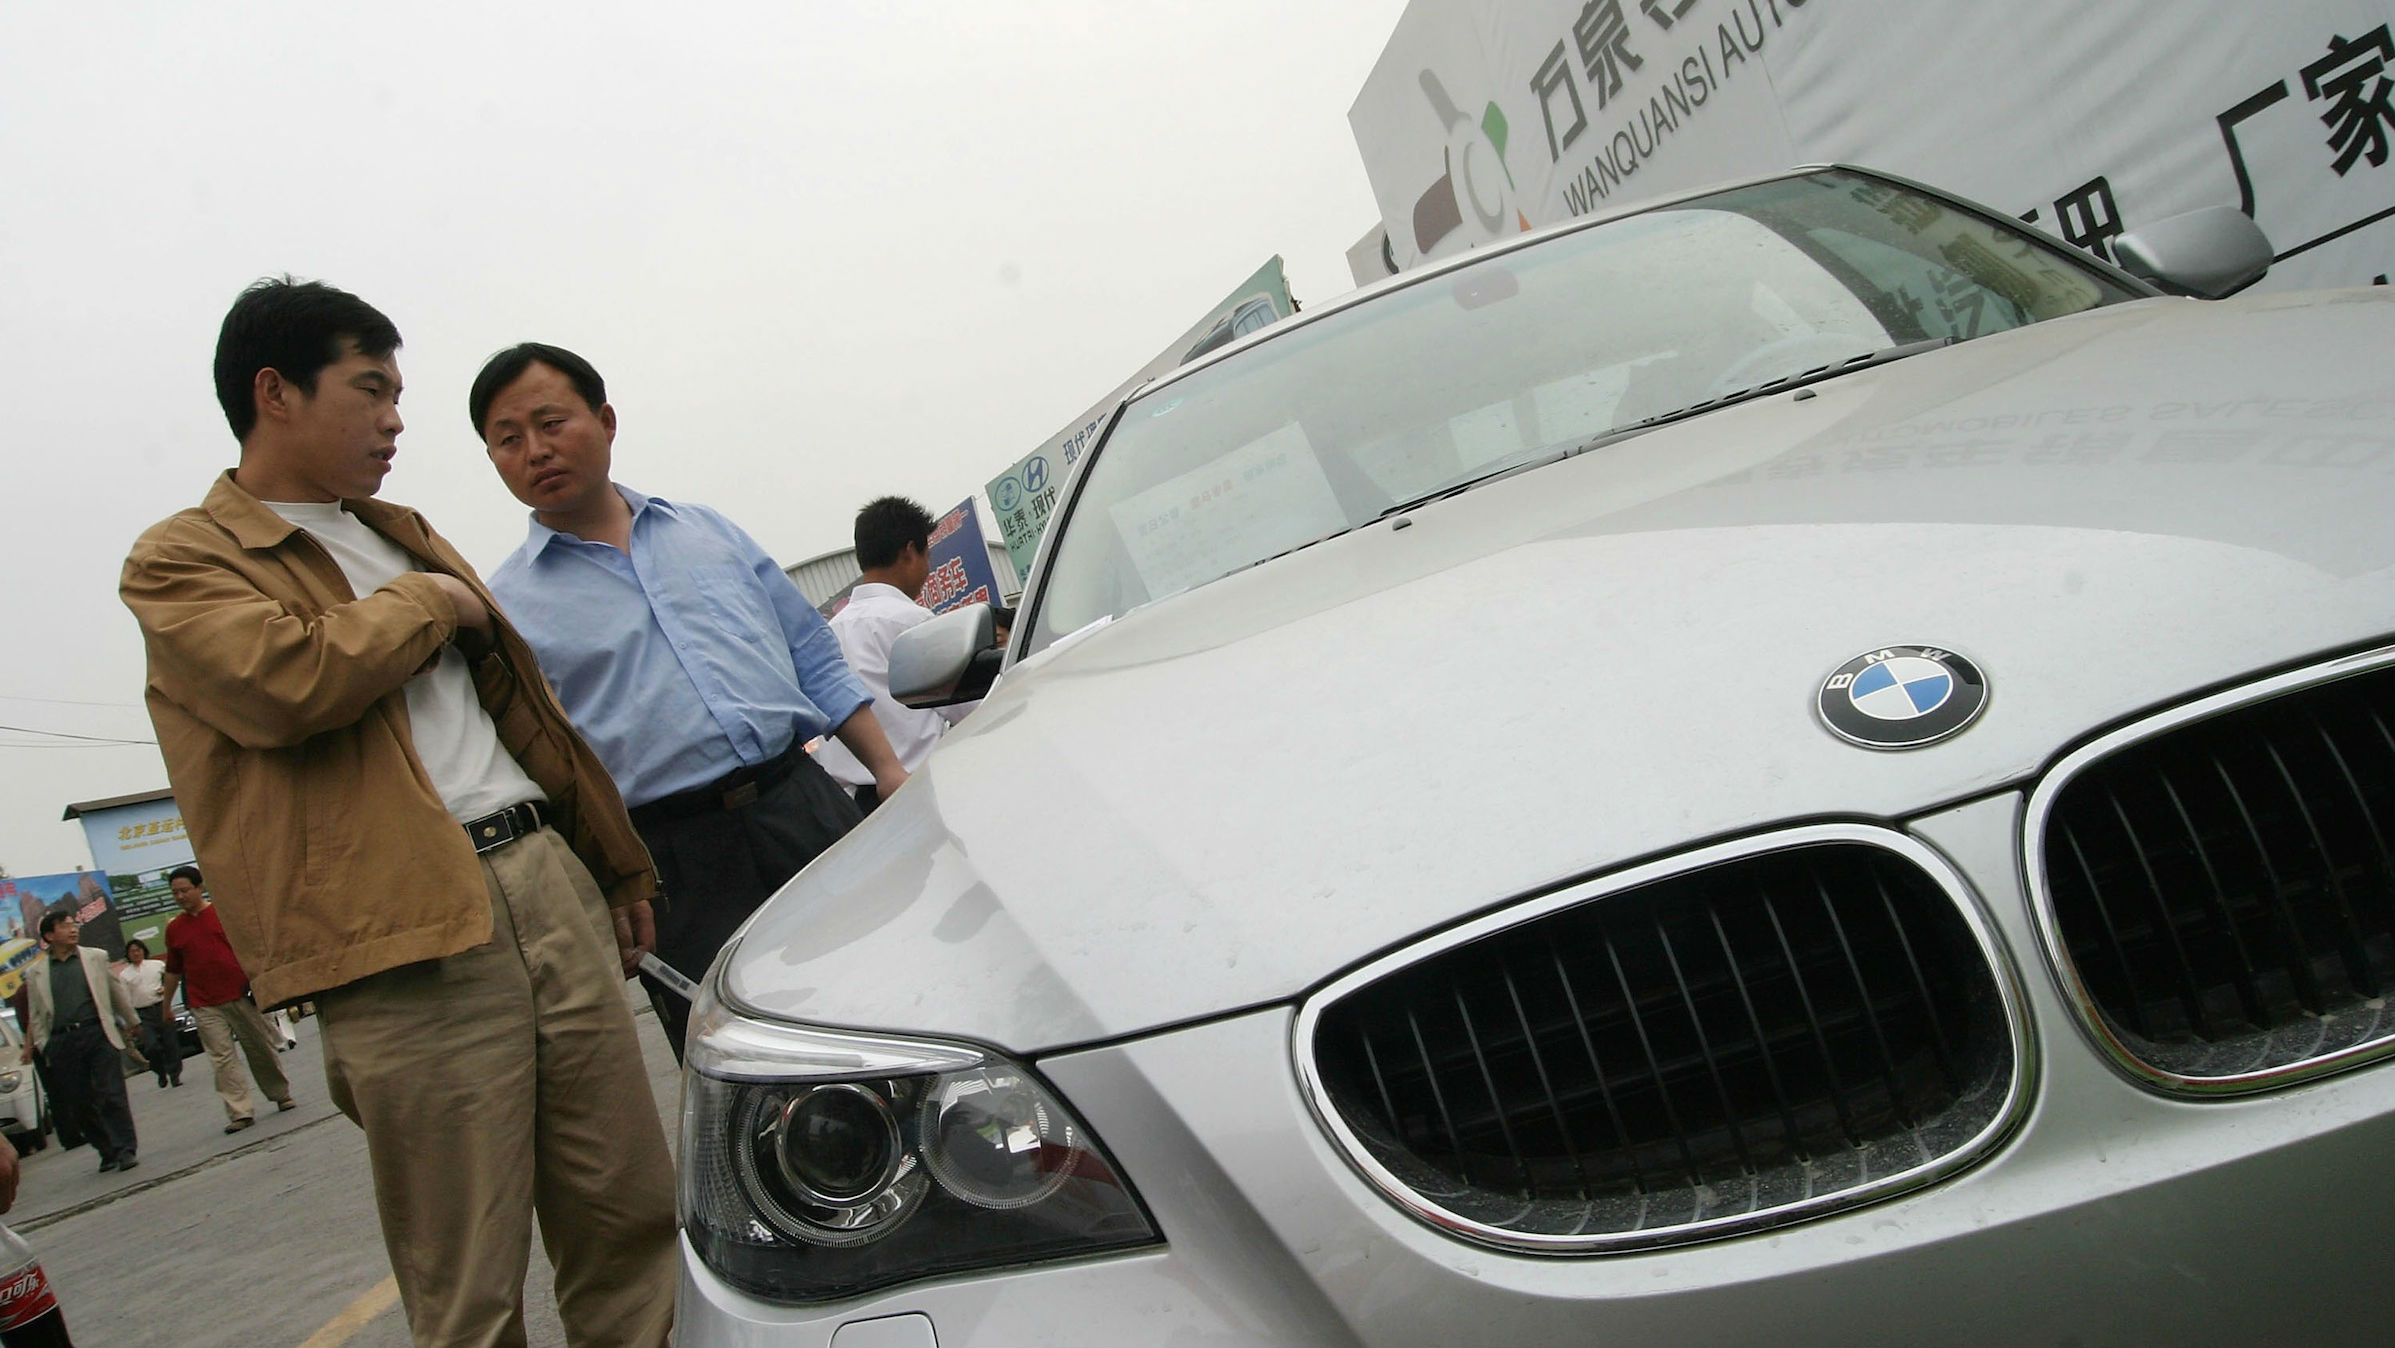 luxury car export scheme  How to export BMWs from the US to China for fun and profit (Note ...